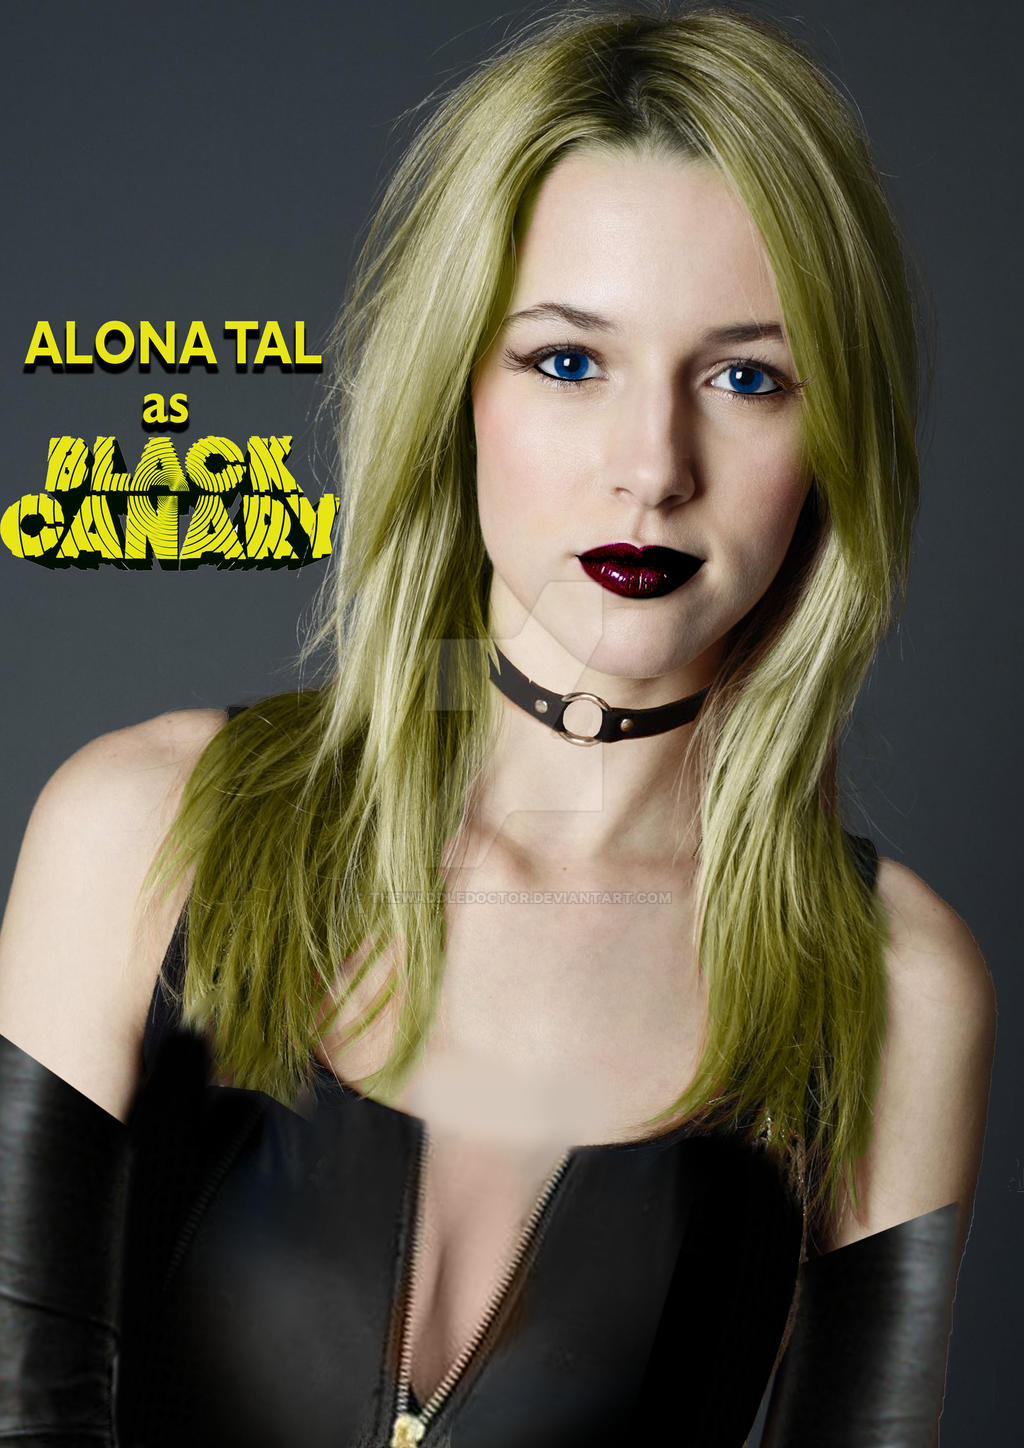 Black Canary Fancast Alona Tal By Thewaddledoctor On -8166